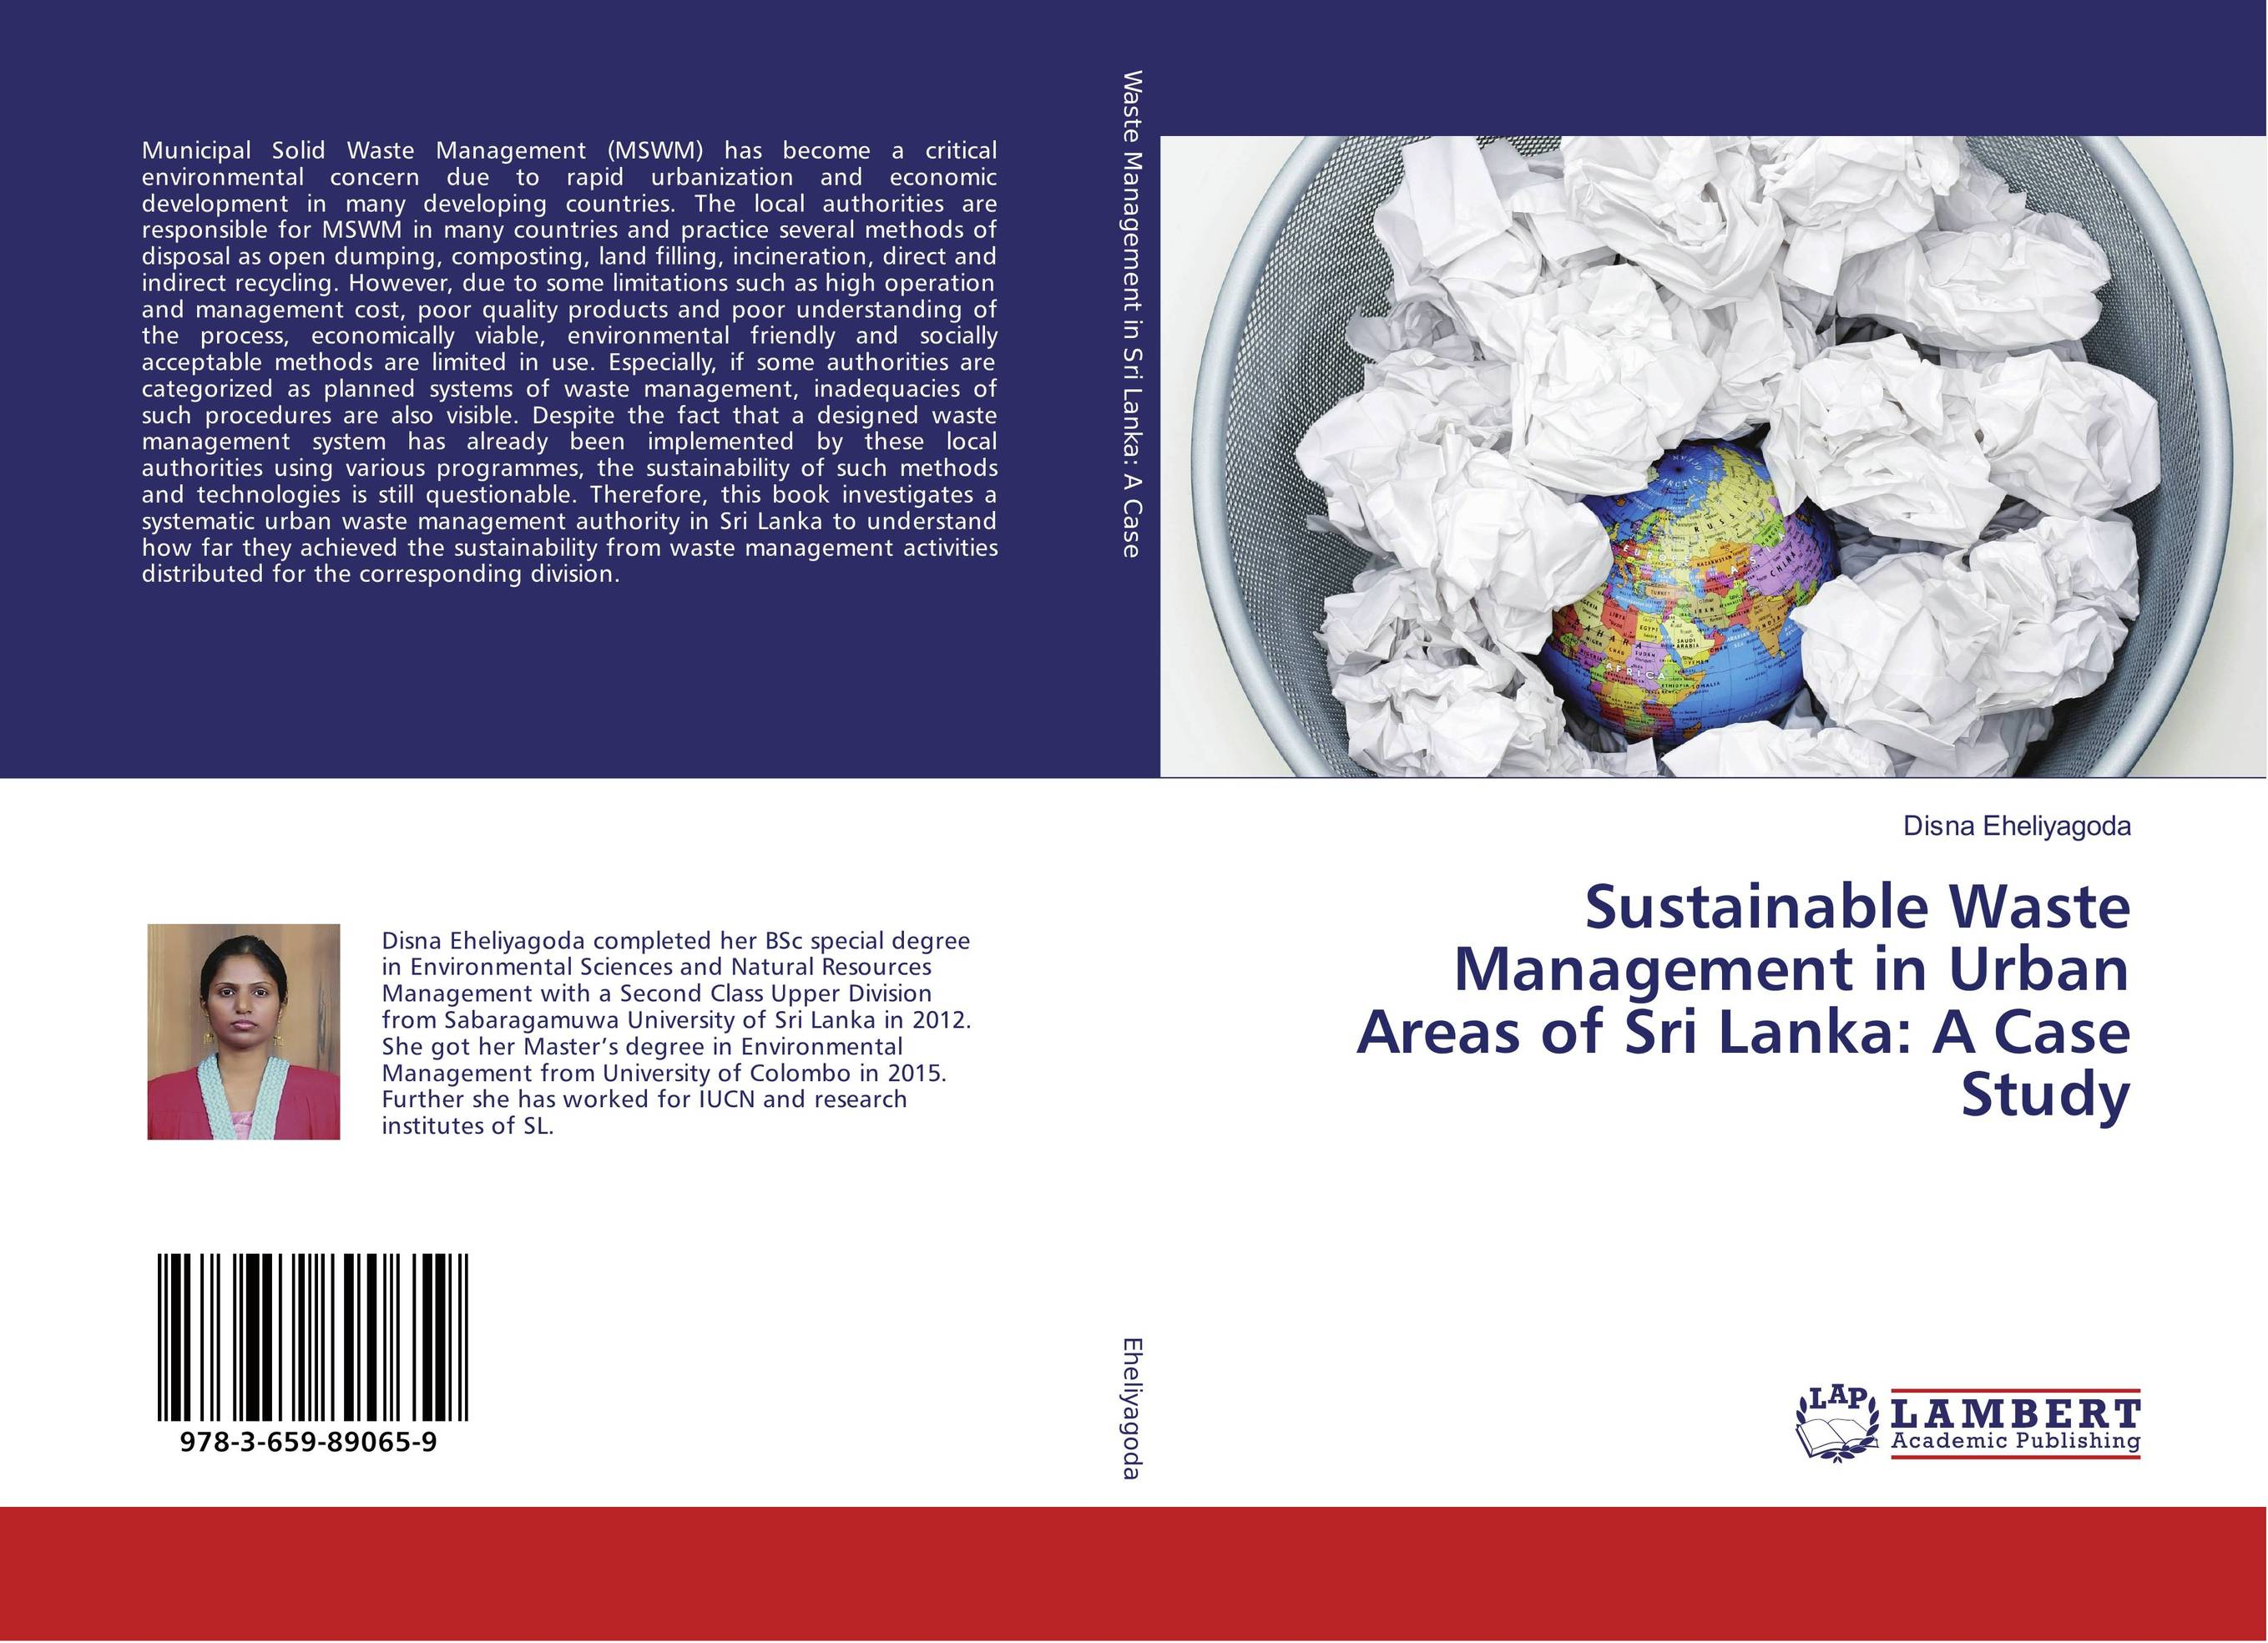 Sustainable Waste Management in Urban Areas of Sri Lanka: A Case Study